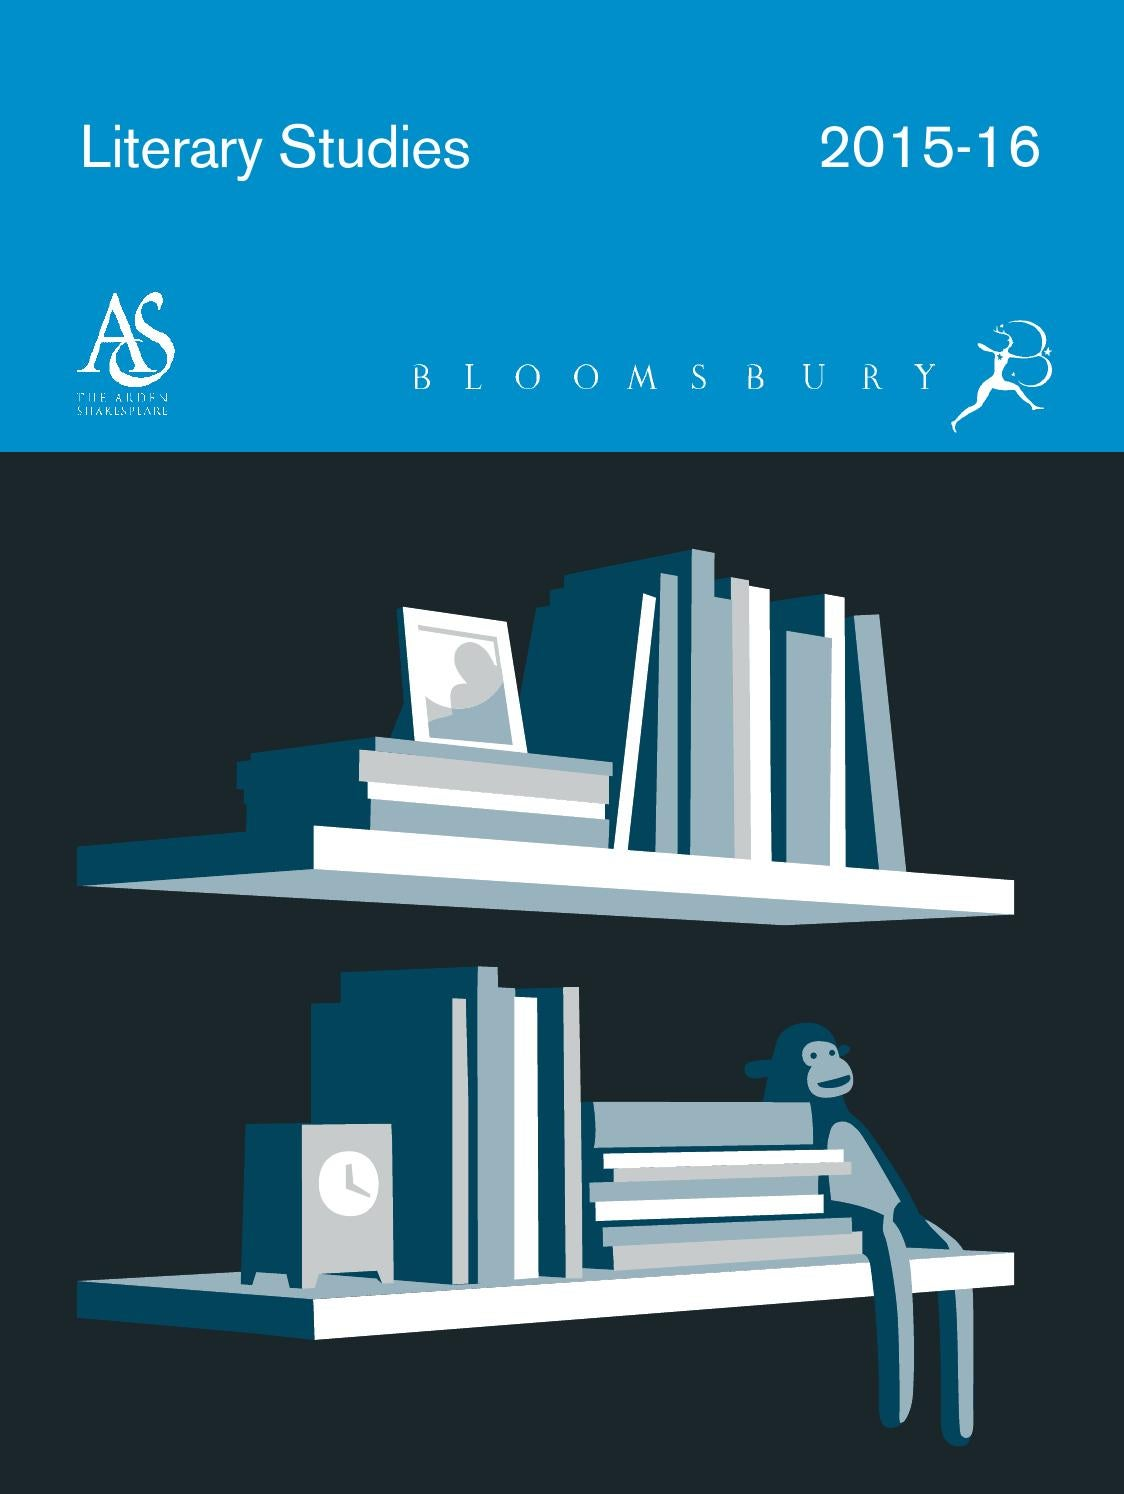 Literary Studies 2015-16 Catalog by Bloomsbury Publishing - issuu